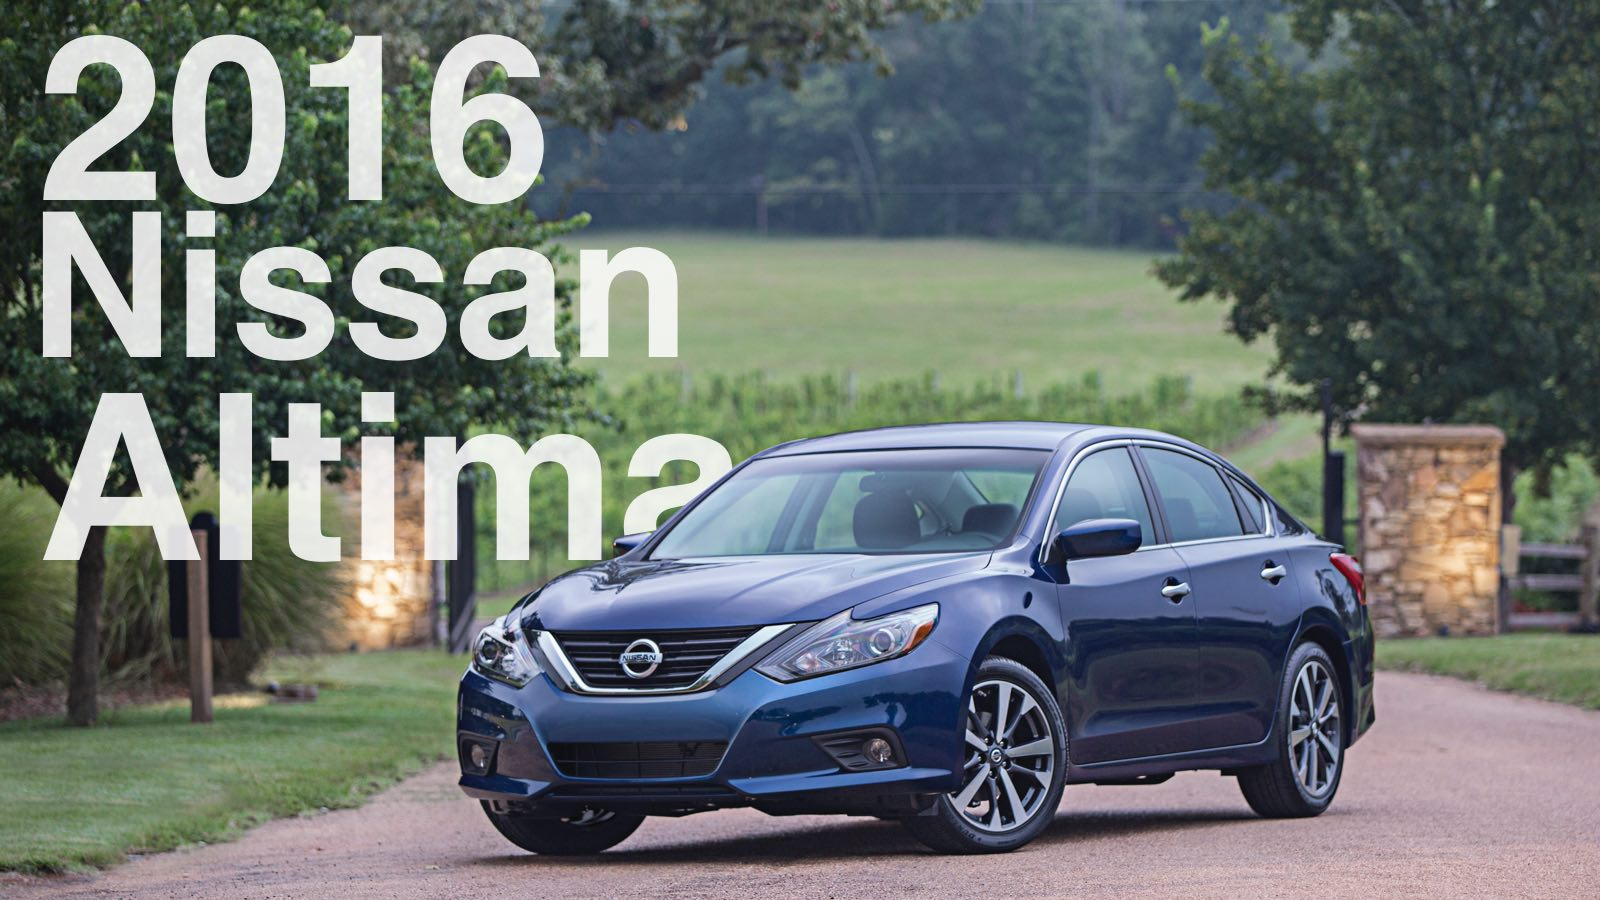 The 2016 Nissan Altima